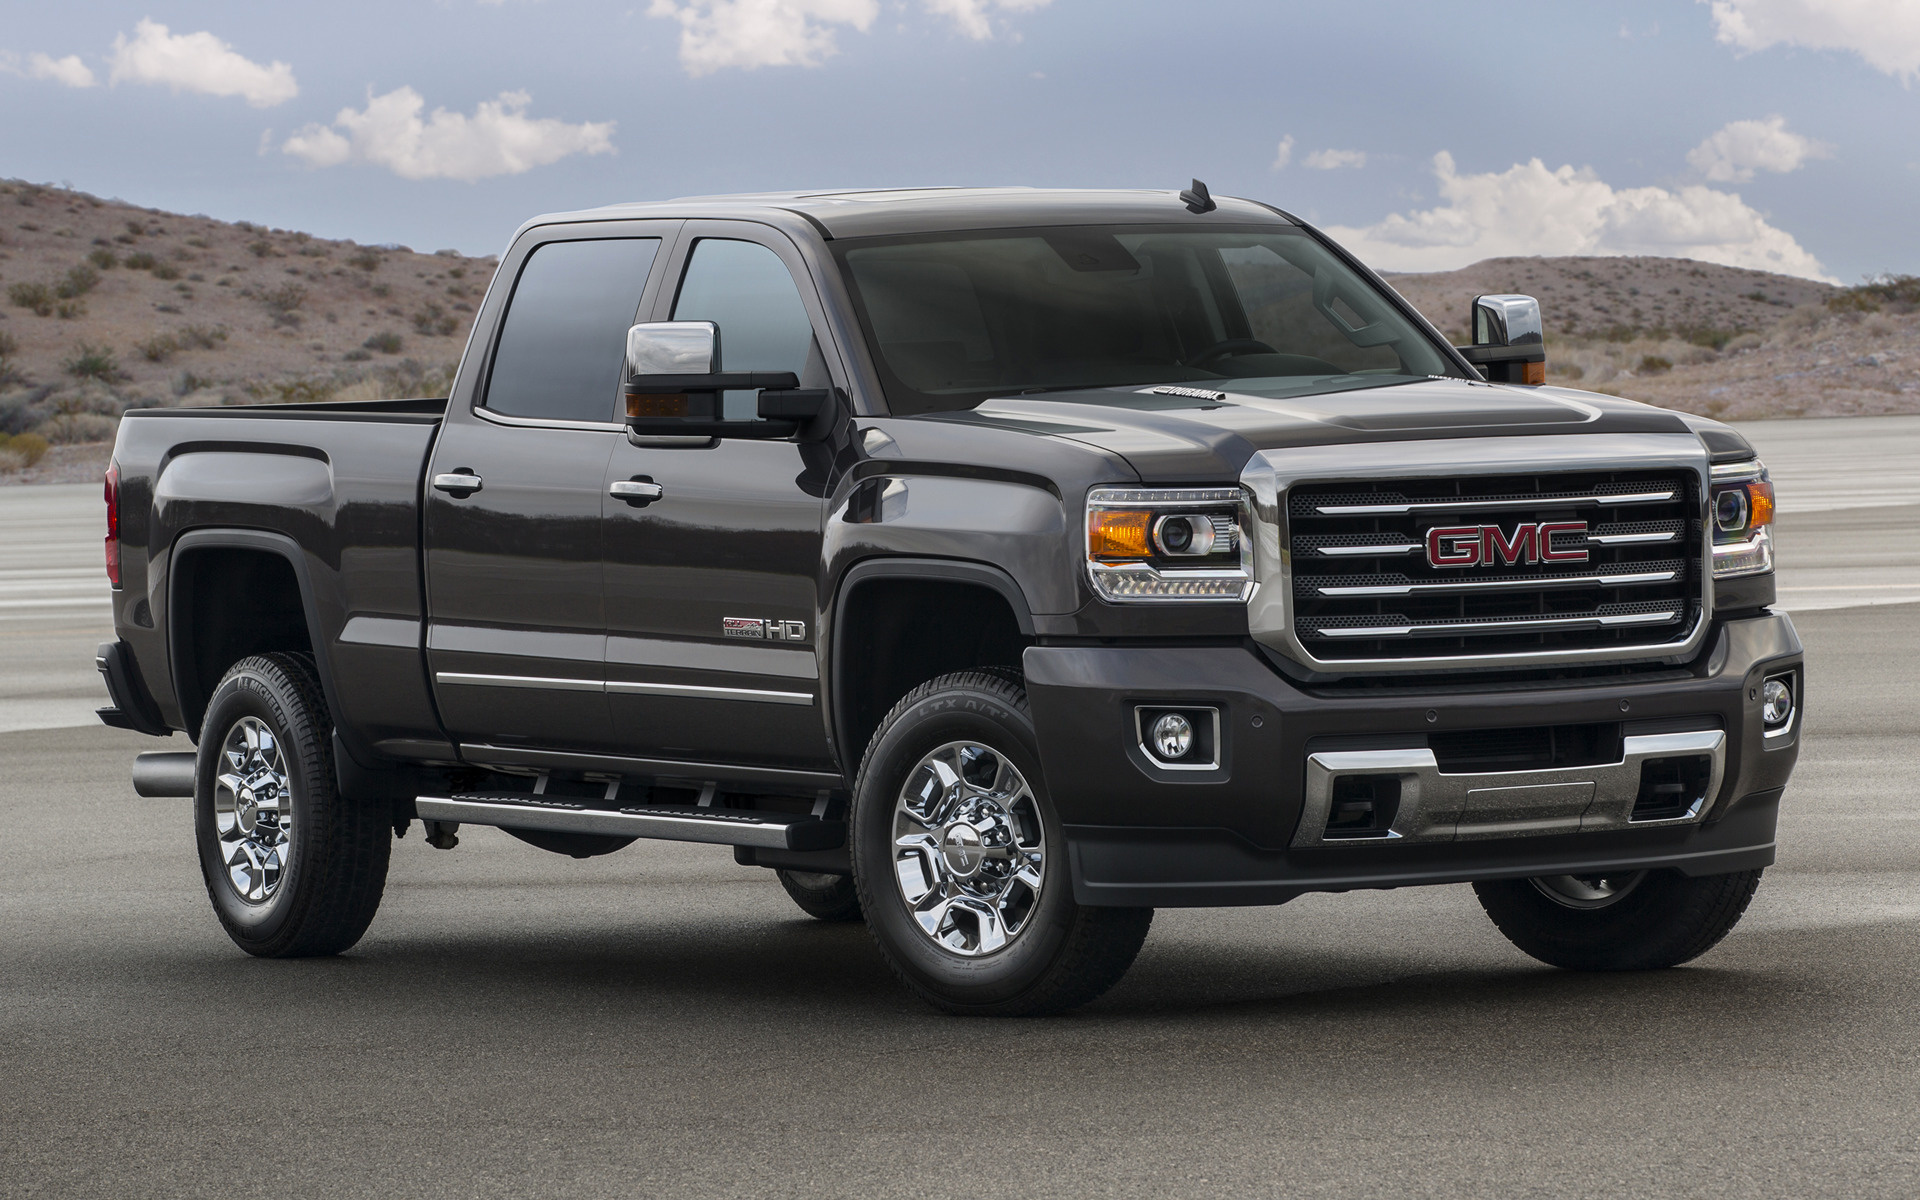 GMC Sierra All Terrain 2500 HD Crew Cab (2015) Wallpapers and HD Images - Car Pixel